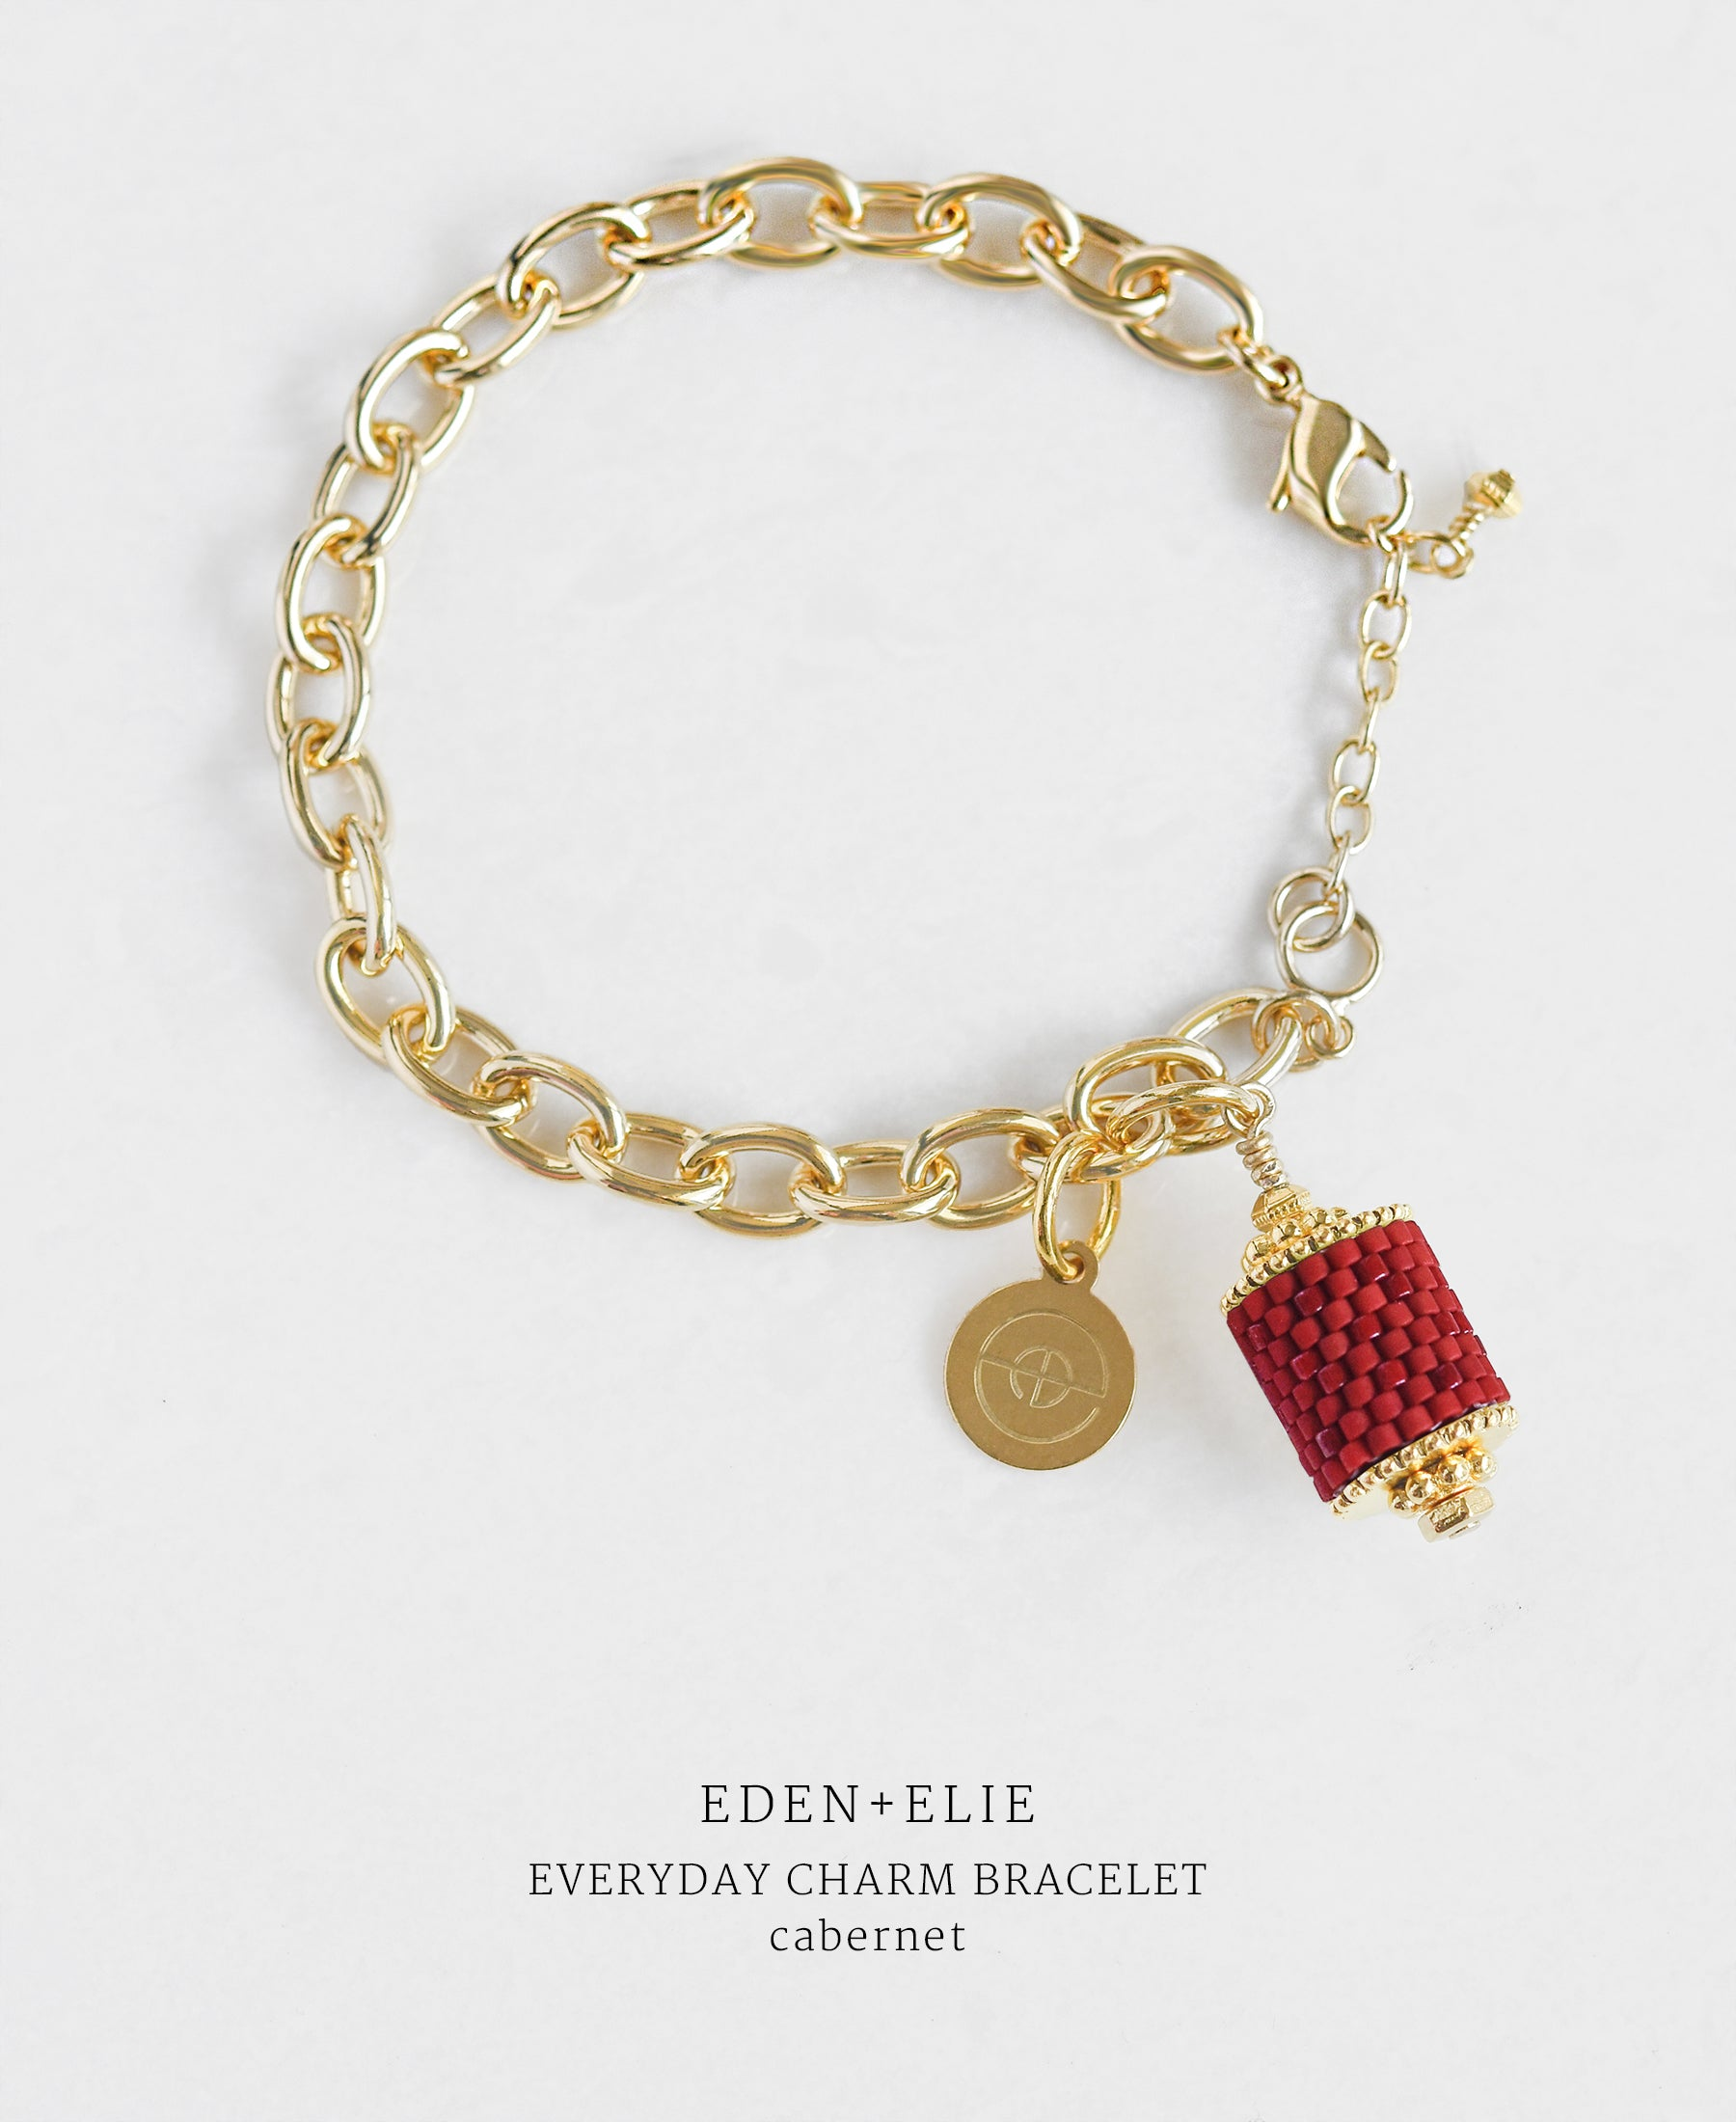 EDEN + ELIE Everyday gold charm bracelet - cabernet red